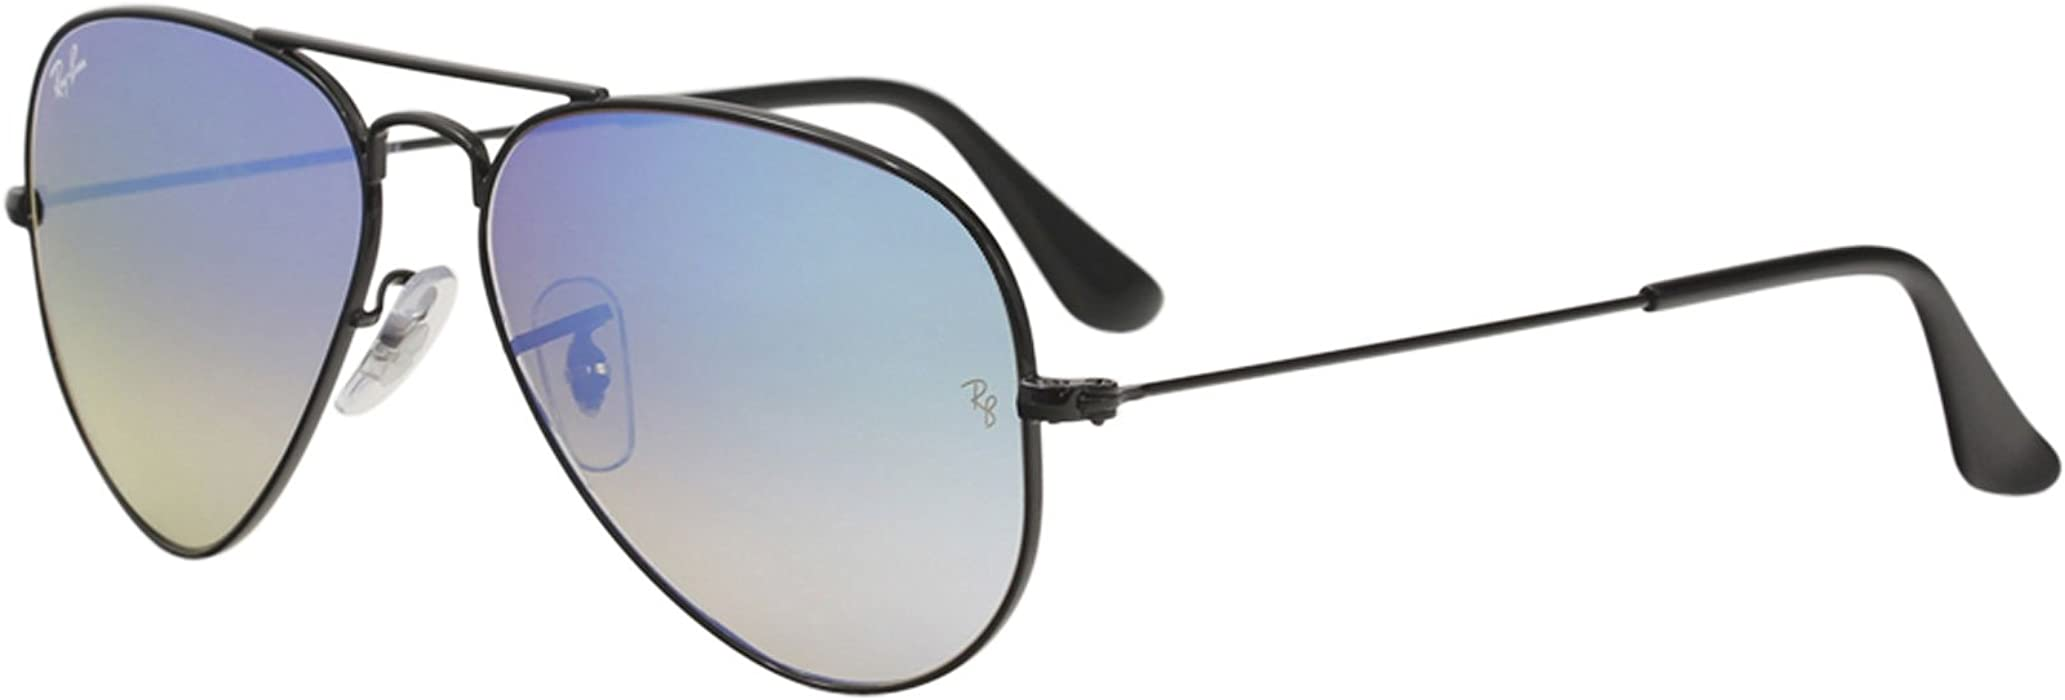 6bf369d196203 Ray Ban RB3025 Aviator Sunglasses-002 40 Black (Crystal Gray Mirror Lens)